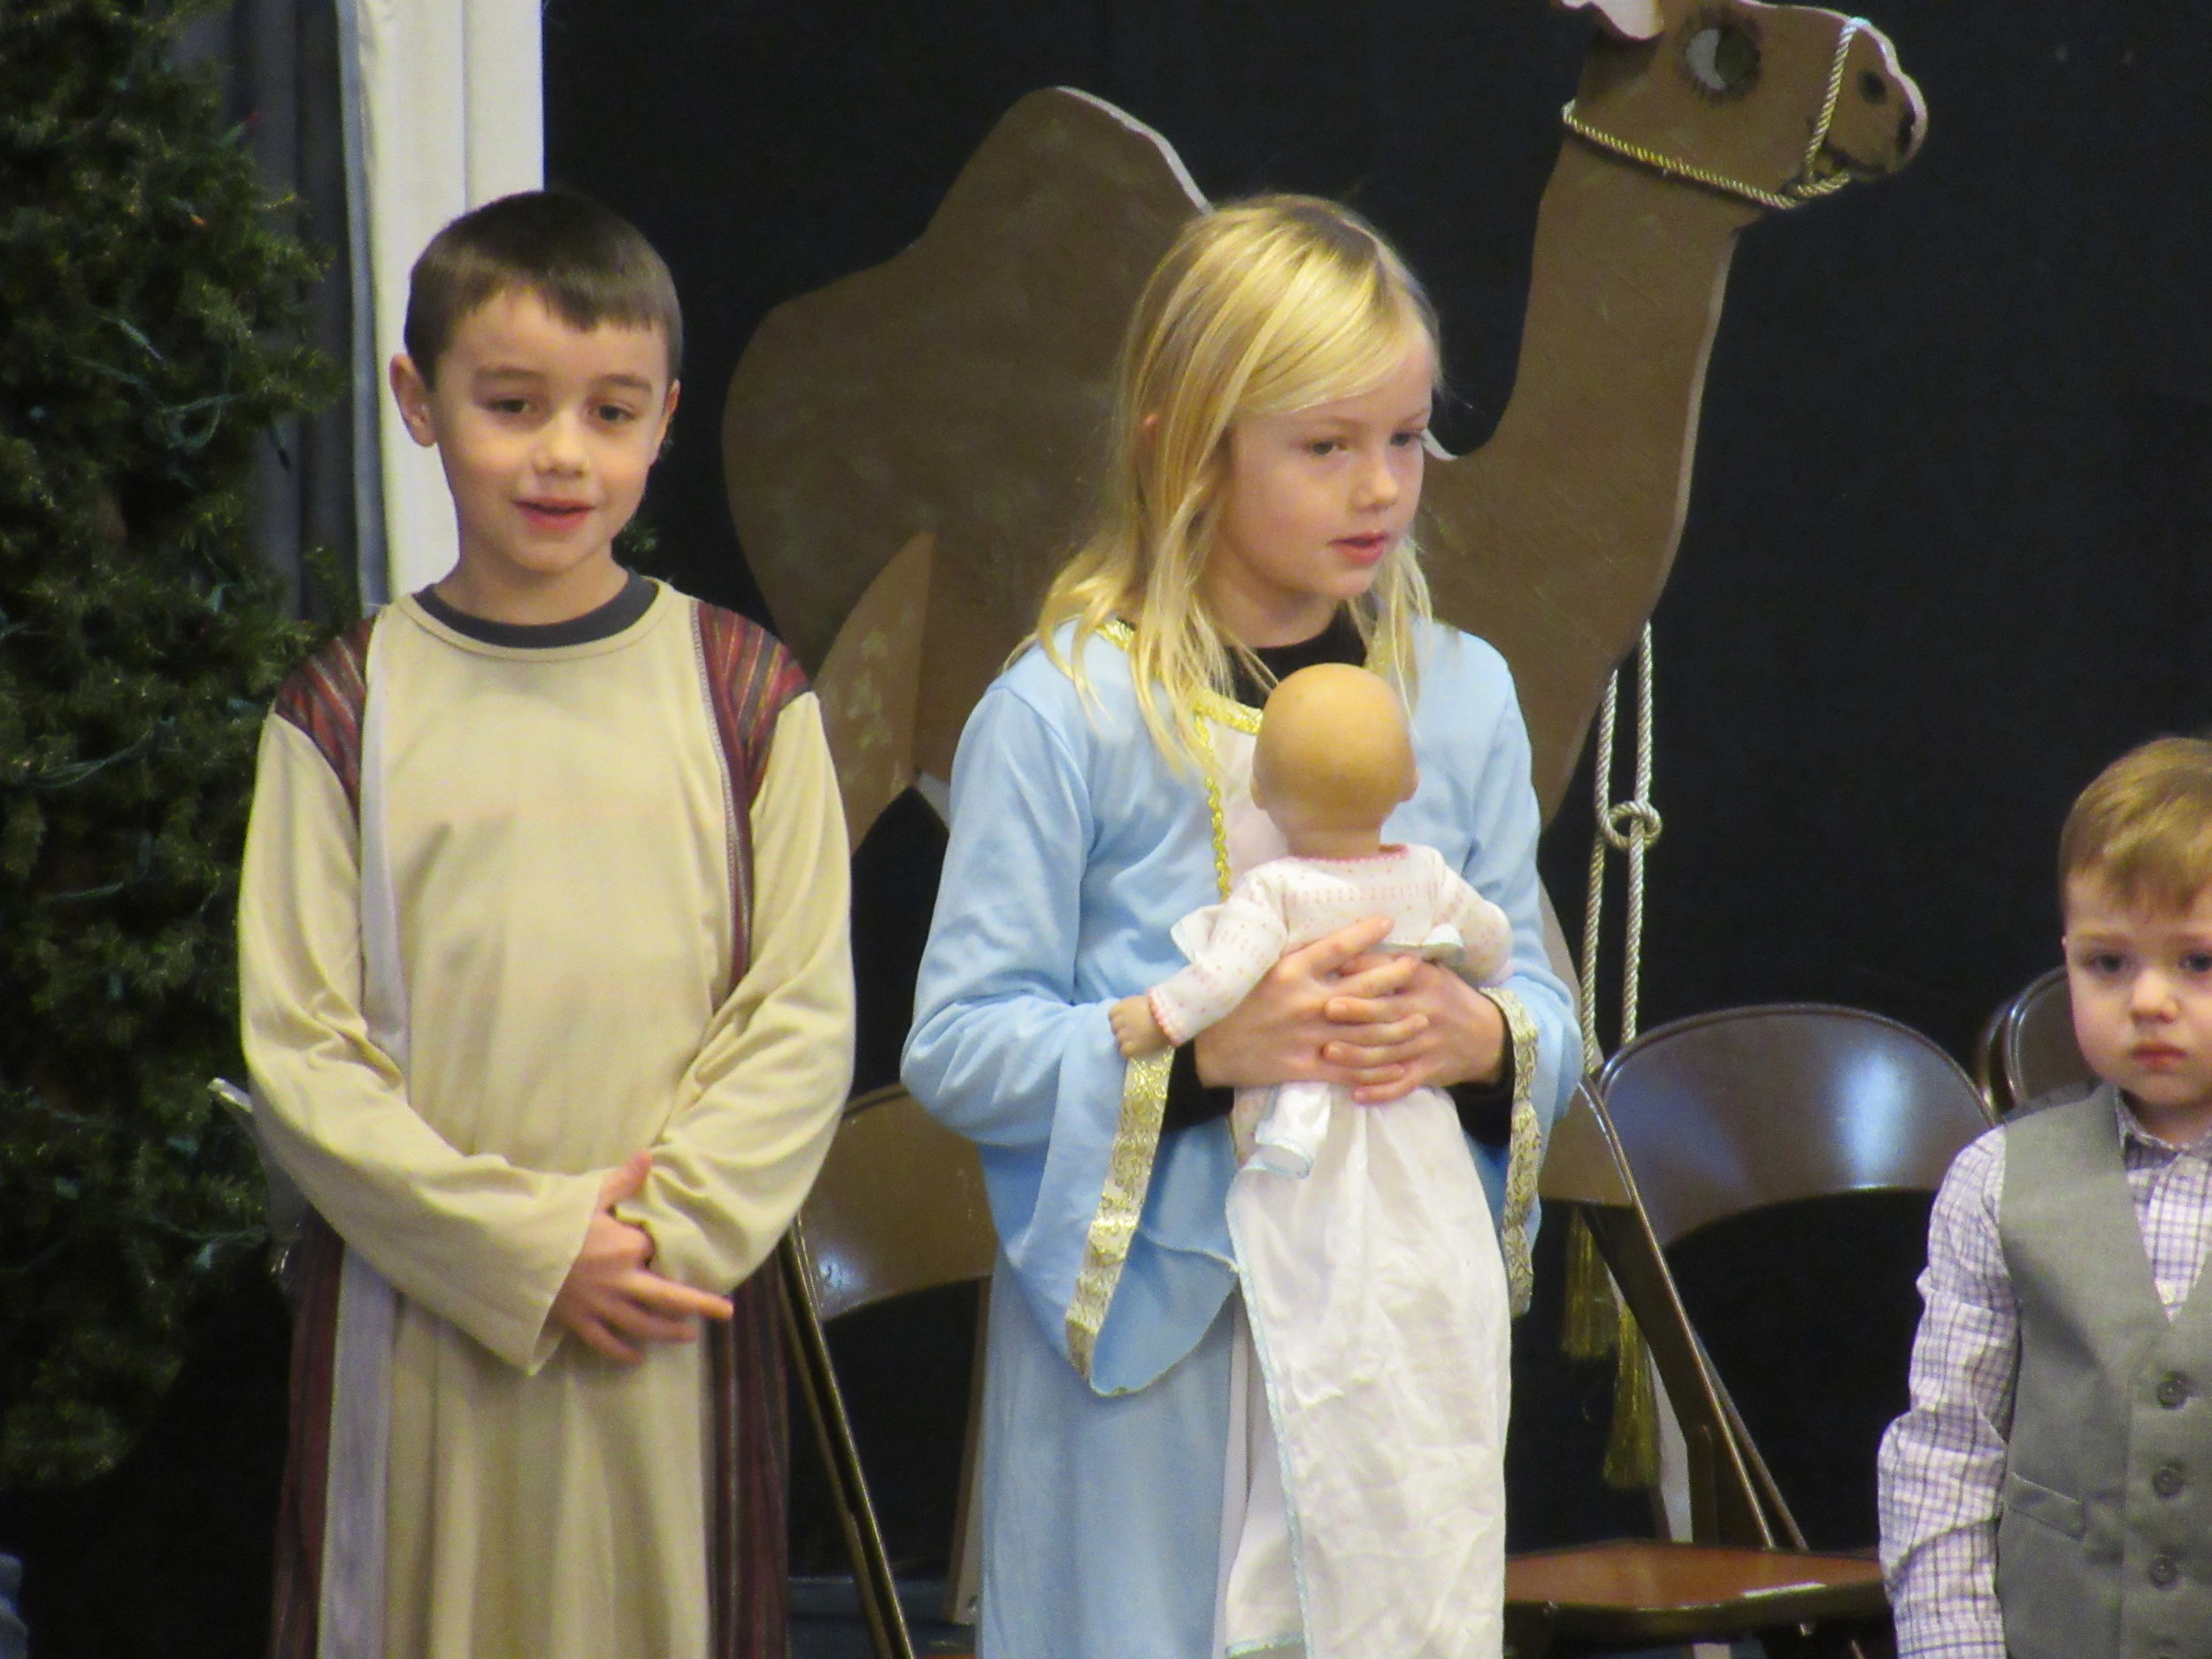 Children_s Christmas Program 6.JPG